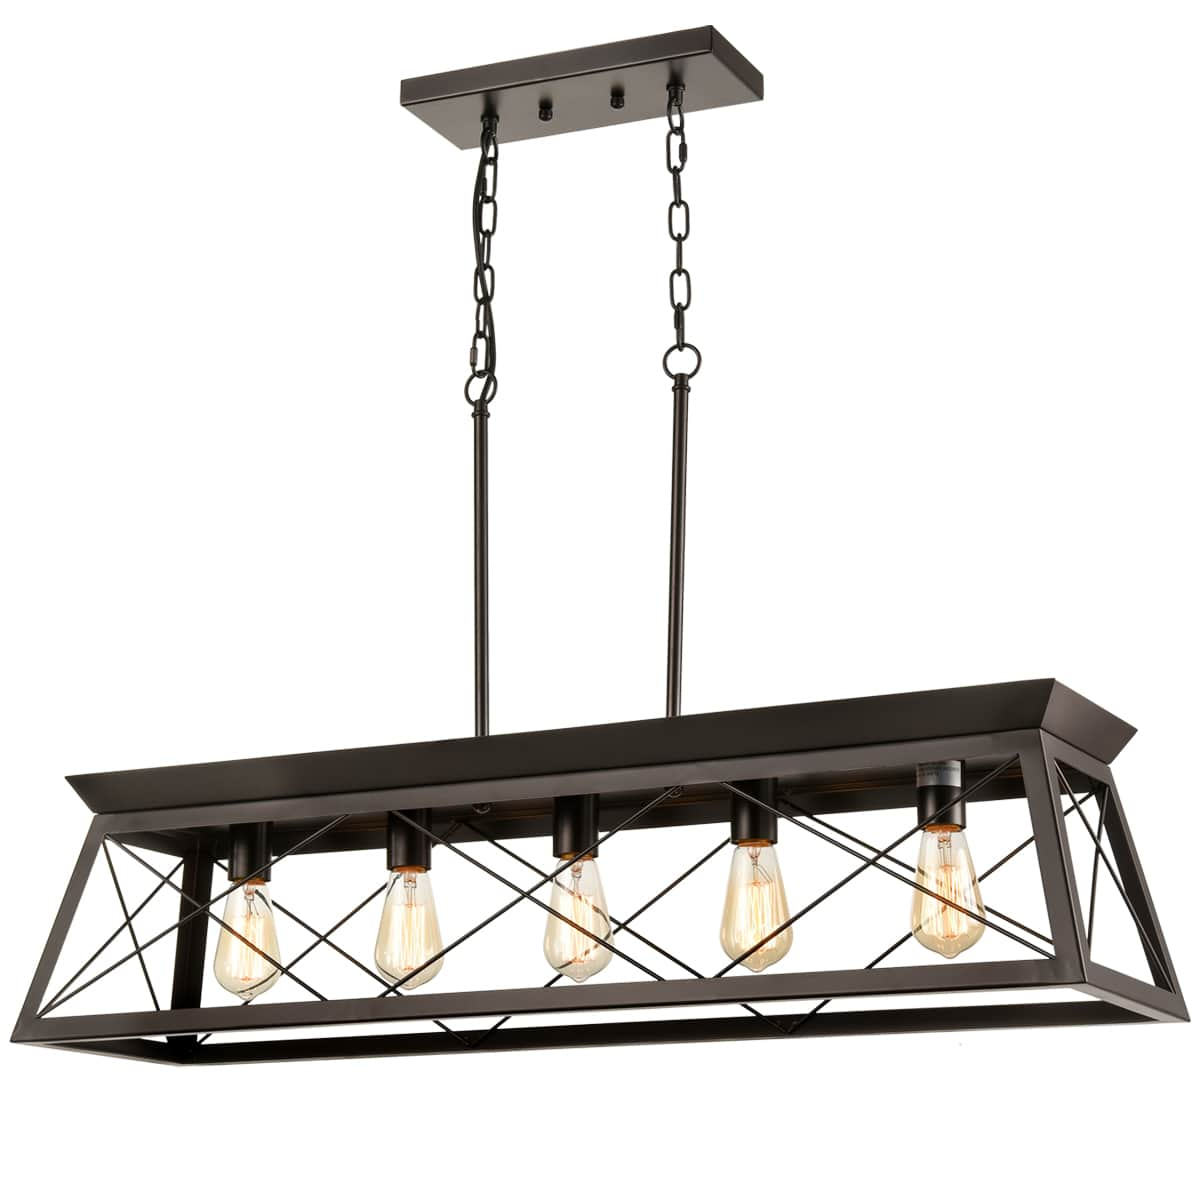 Industrial Cross Framed Trapezoidal Island Chandelier